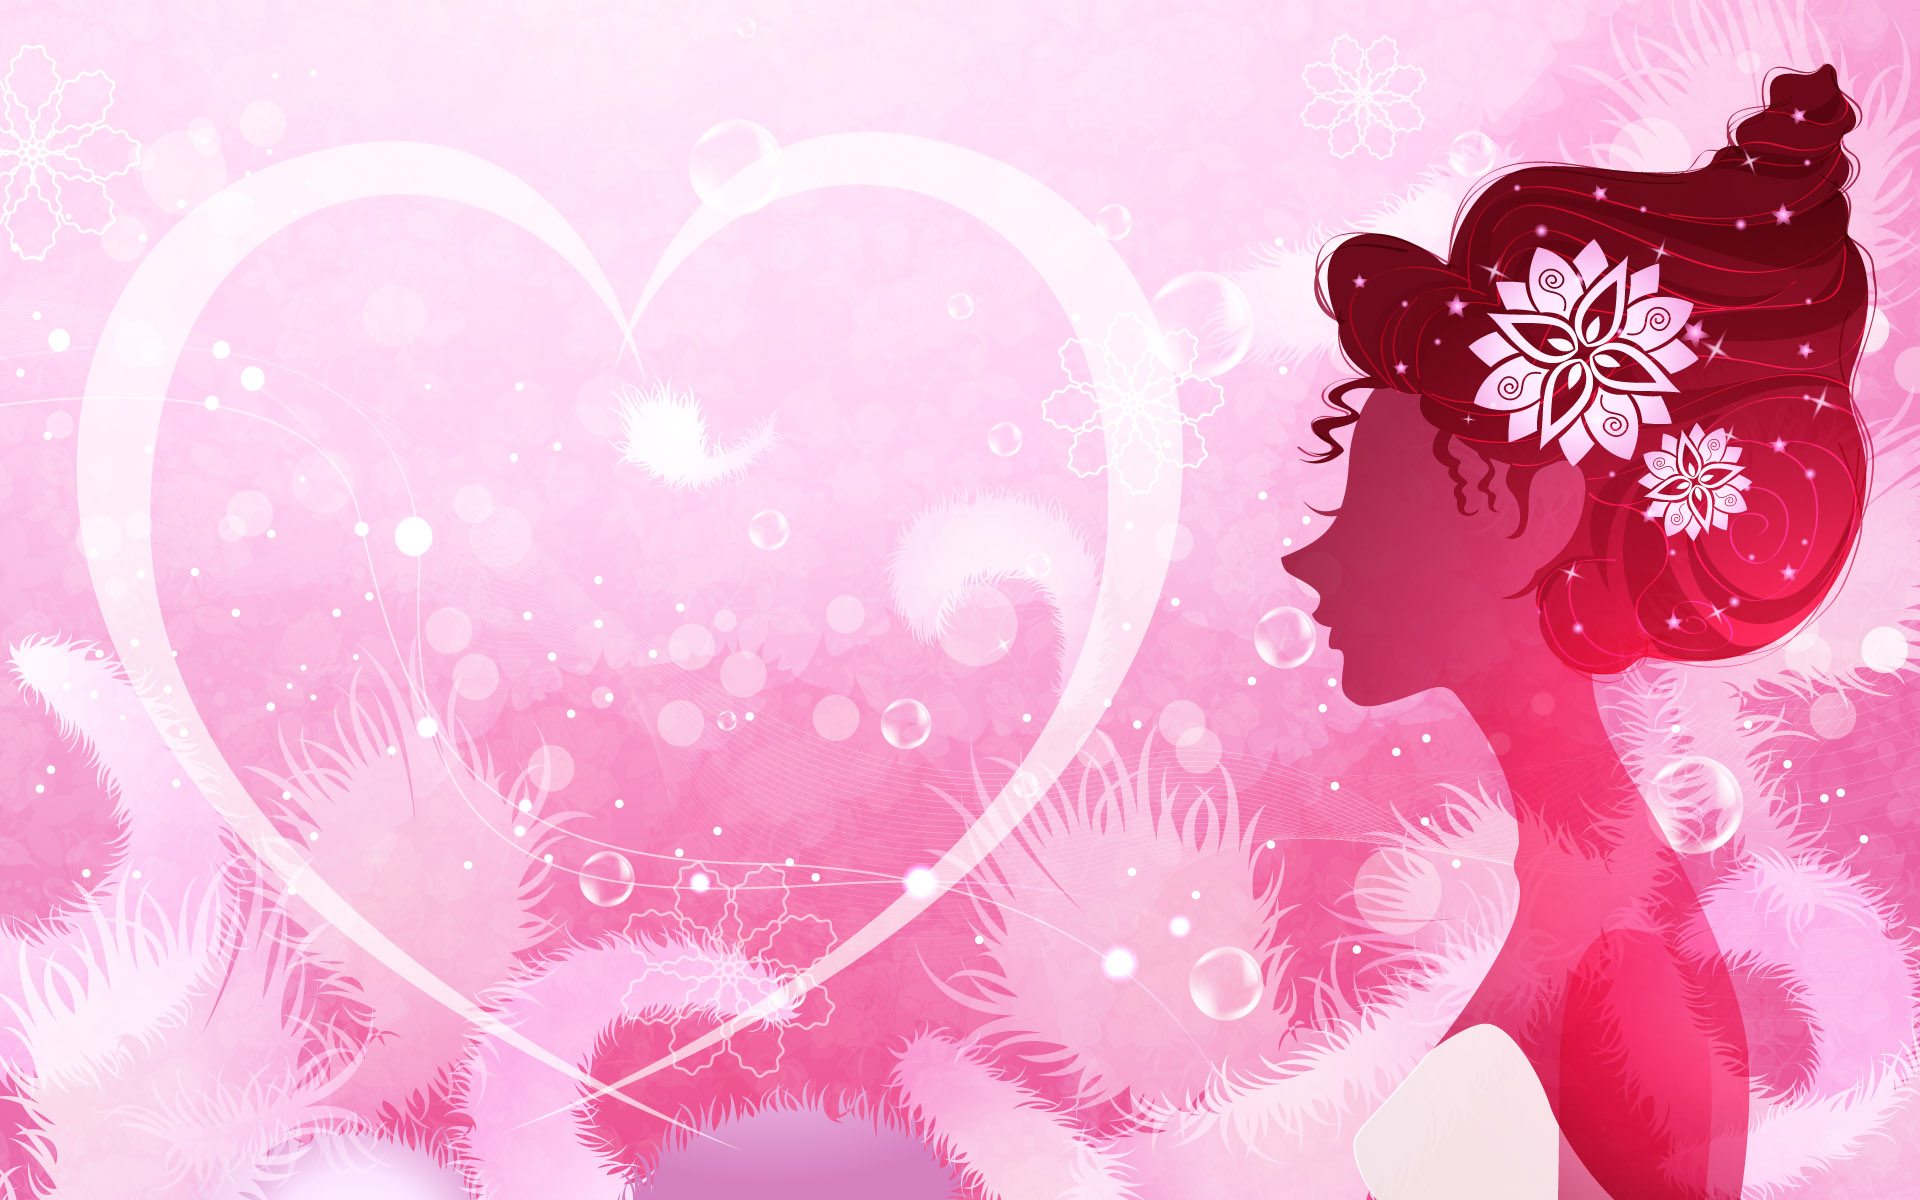 Wallpaper download girly -  Girly Wallpapers Download